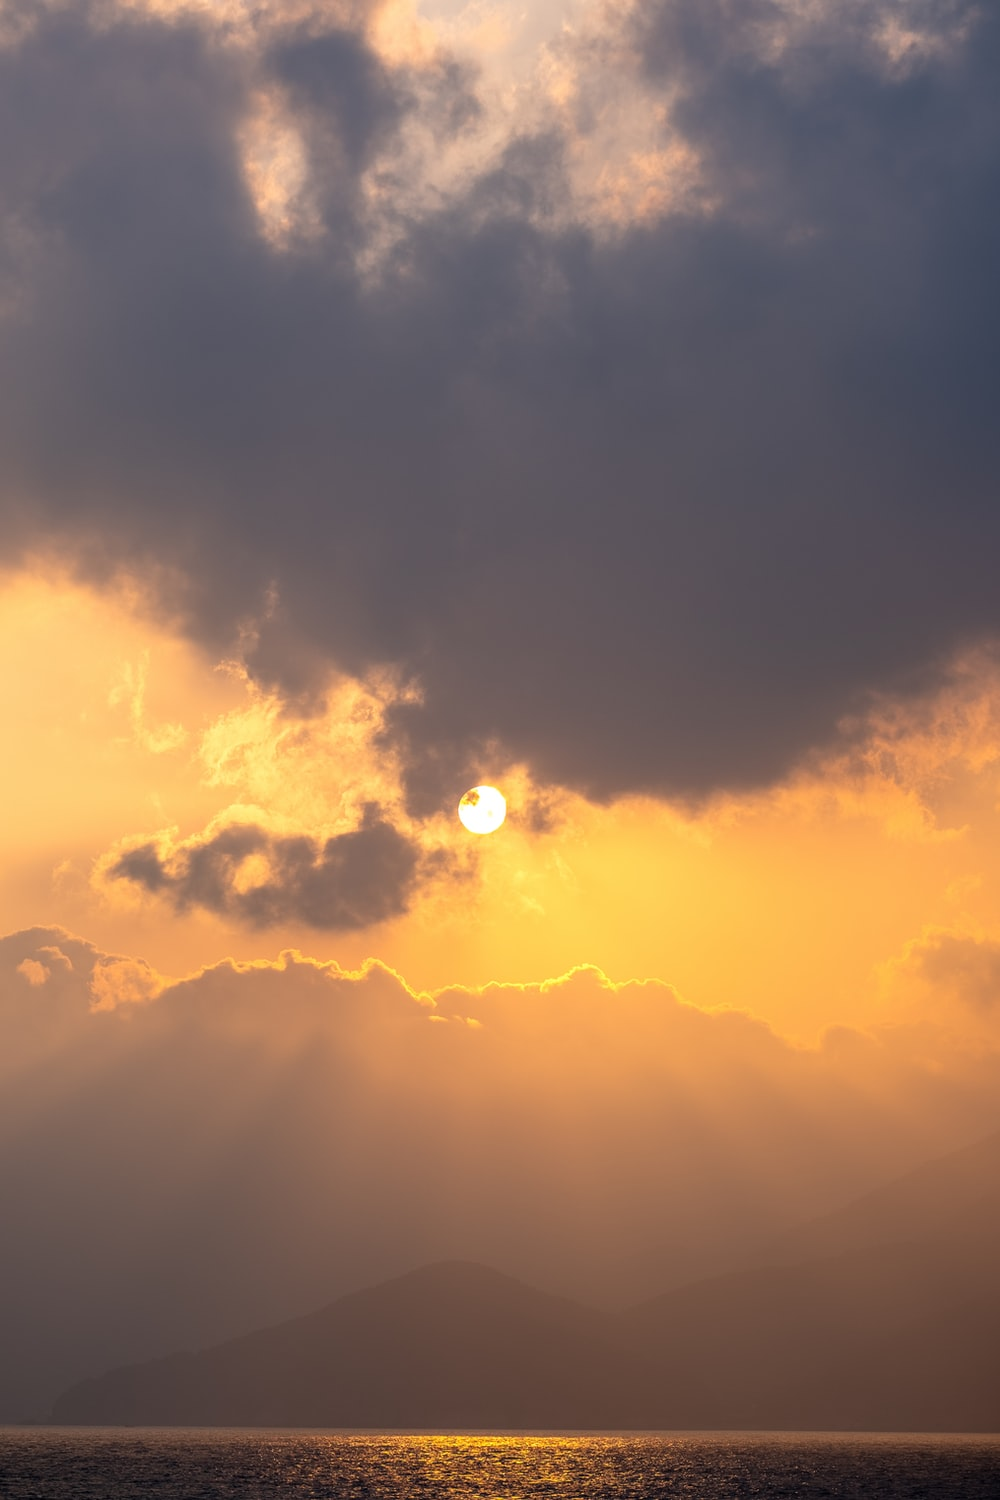 sun covered by clouds during sunset